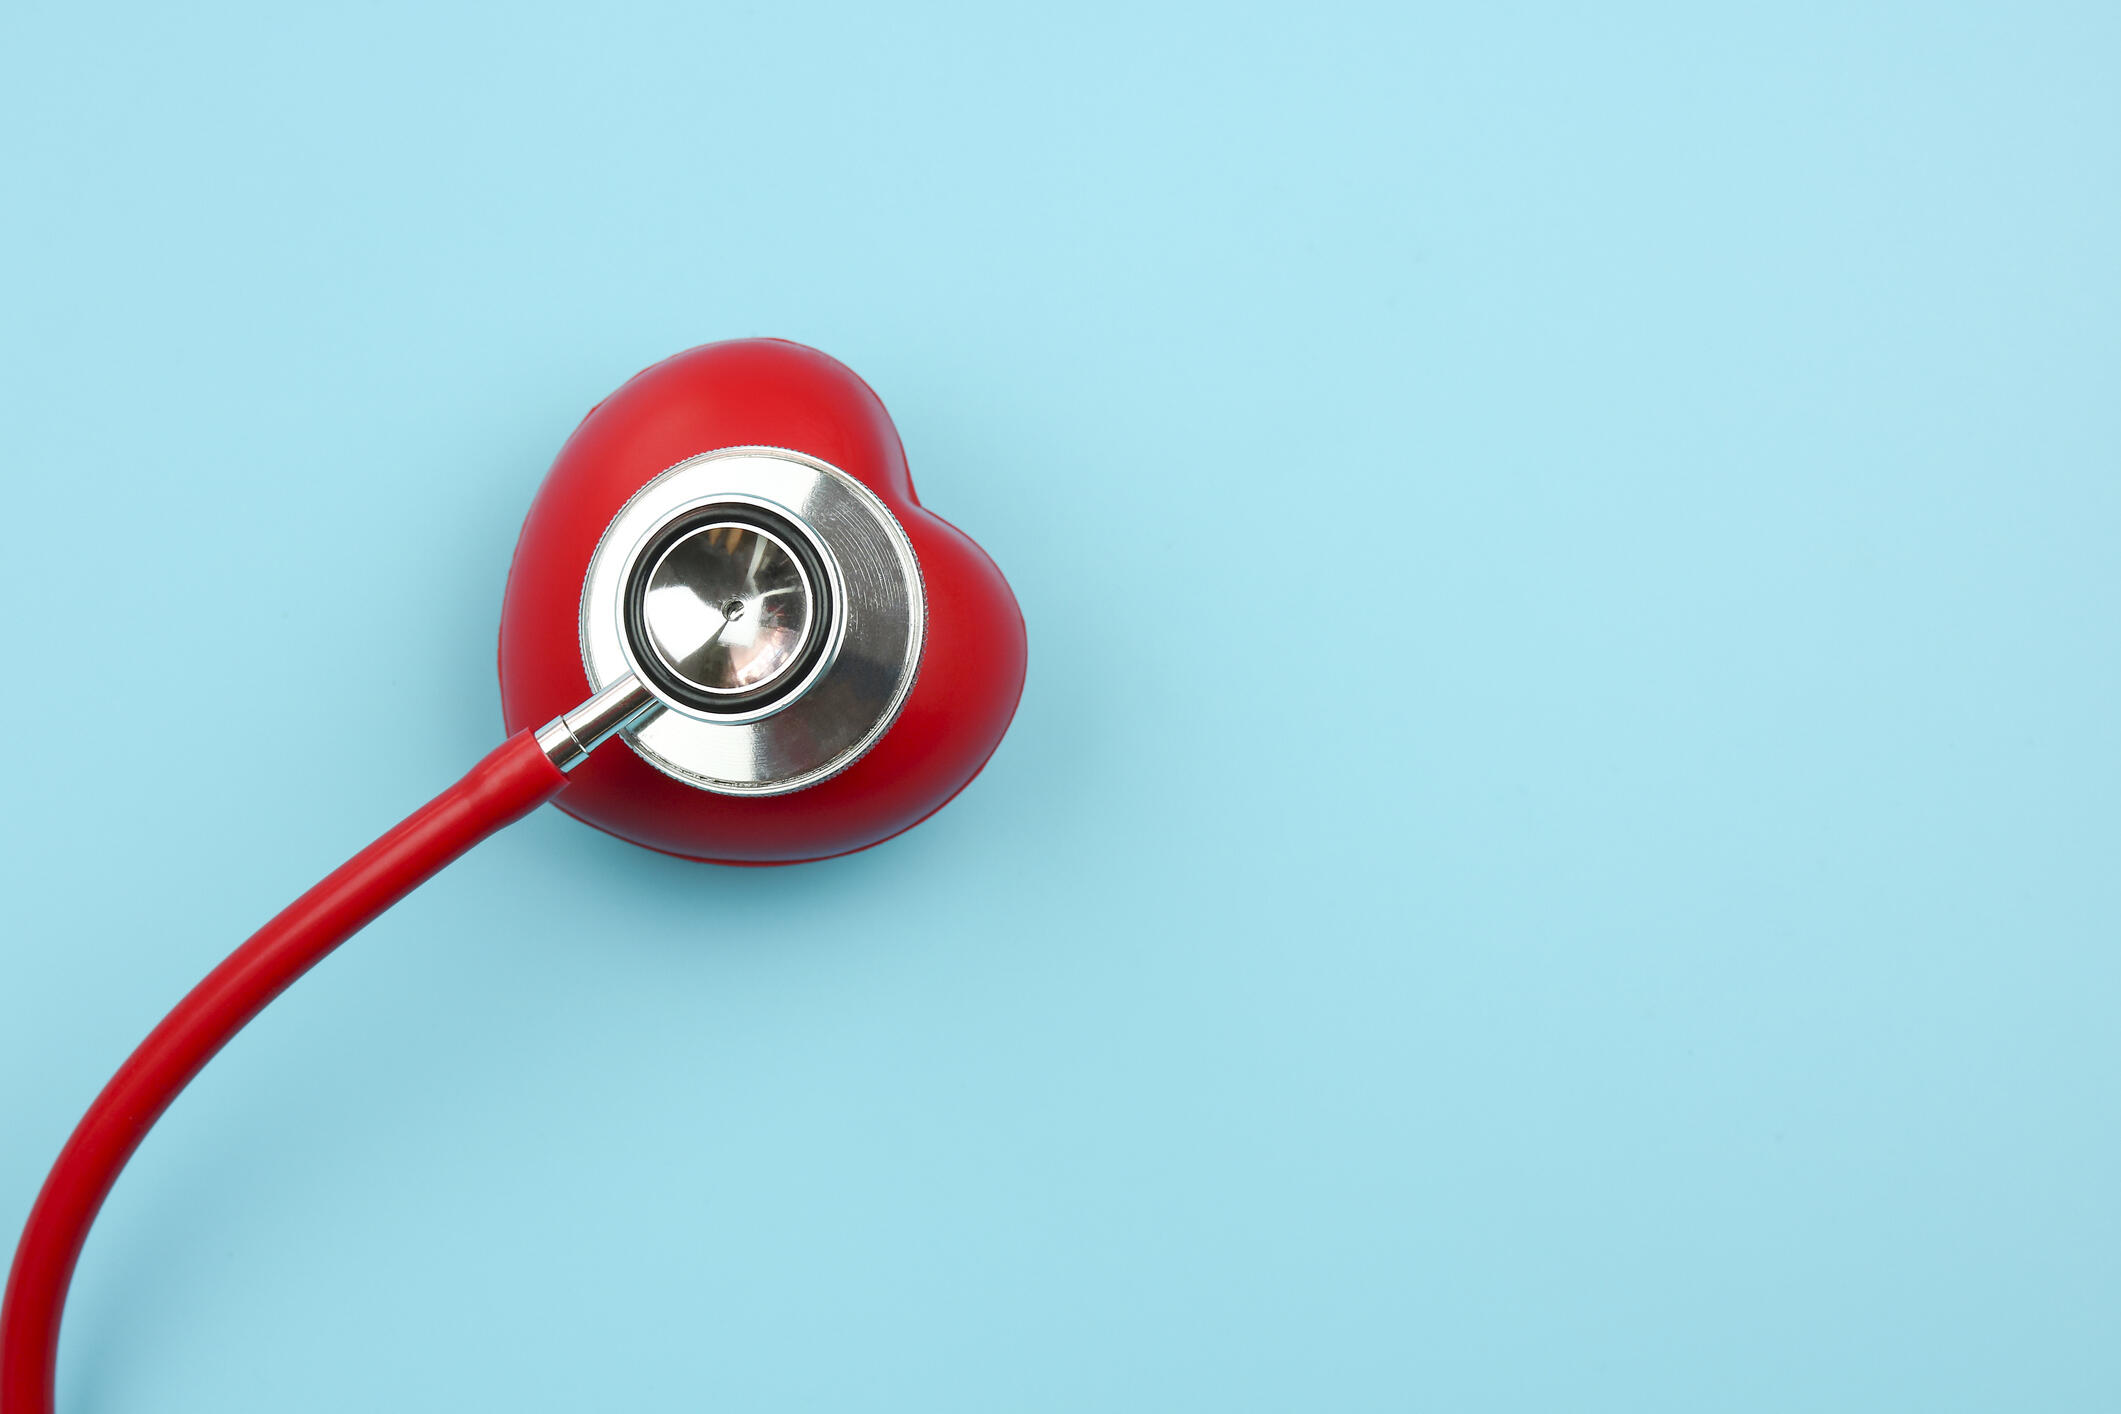 A red heart-shaped stethoscope on a teal background.